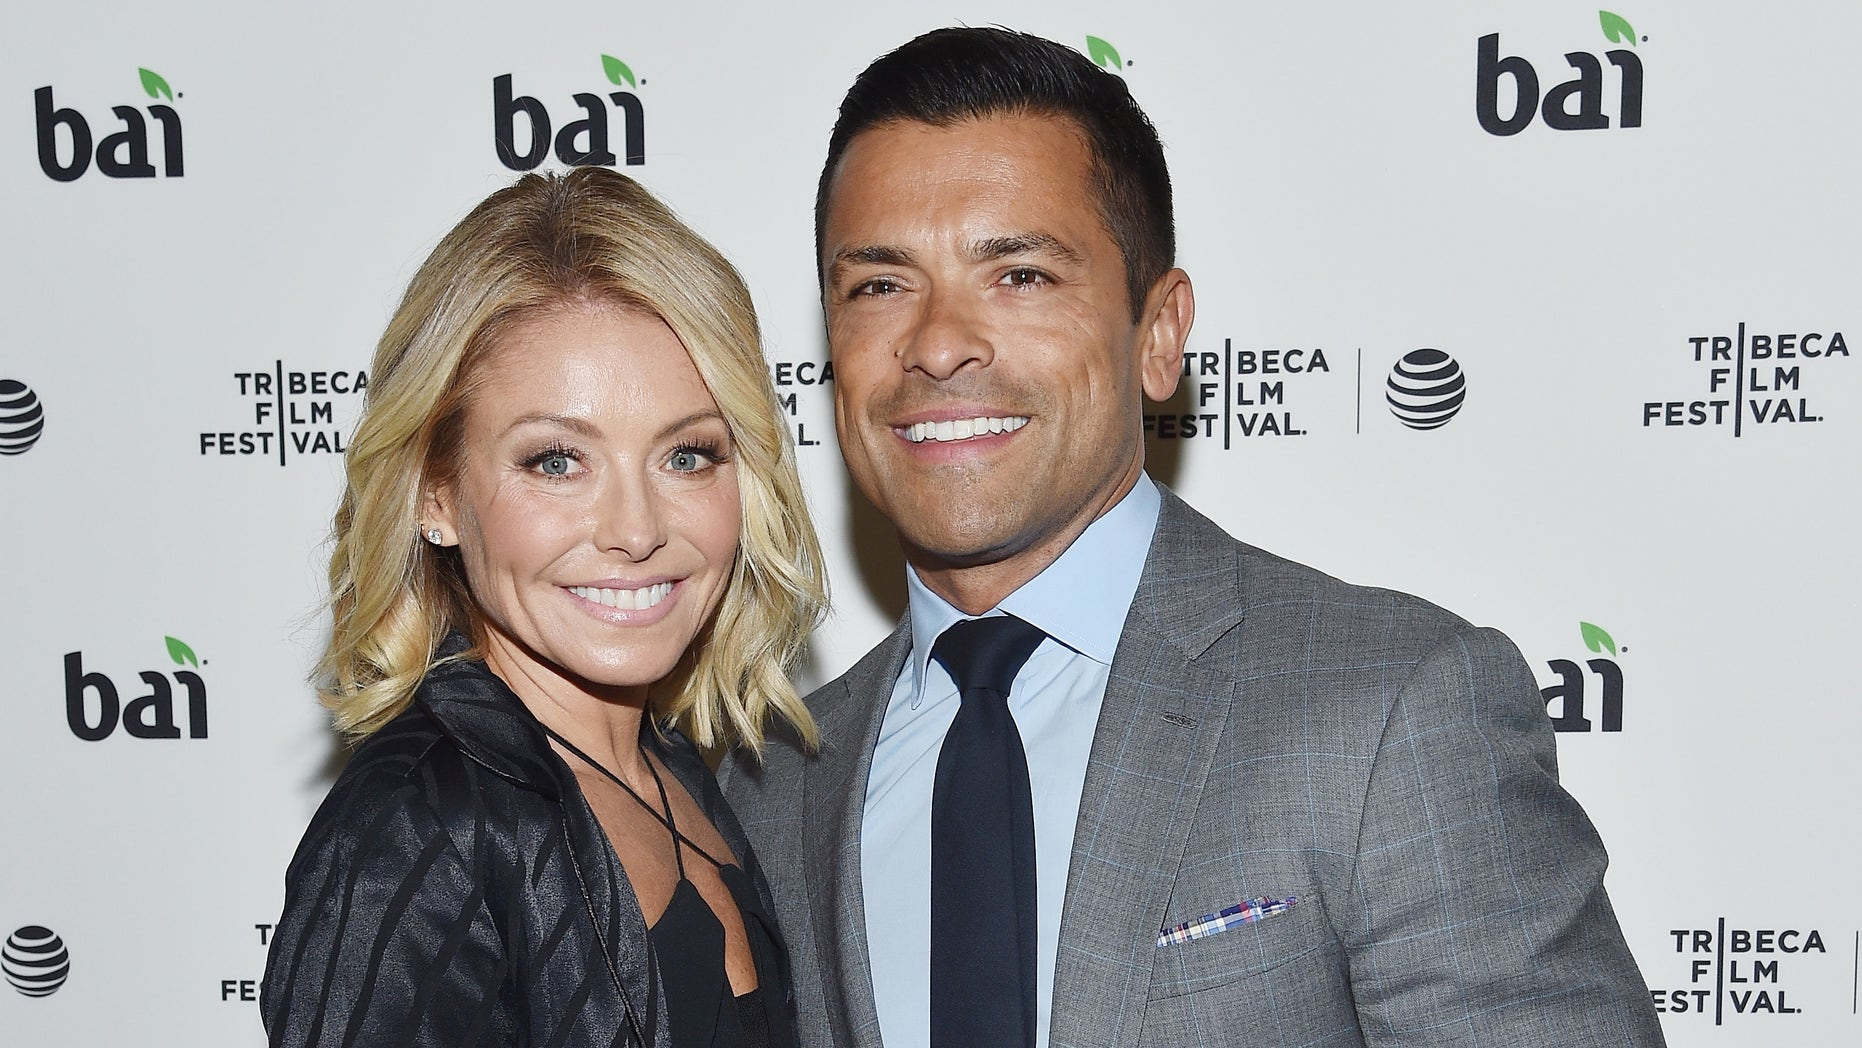 Kelly Ripa and Mark Consuelos at the 2016 Tribeca Film Festival After Party on April 15, 2016 in New York City.